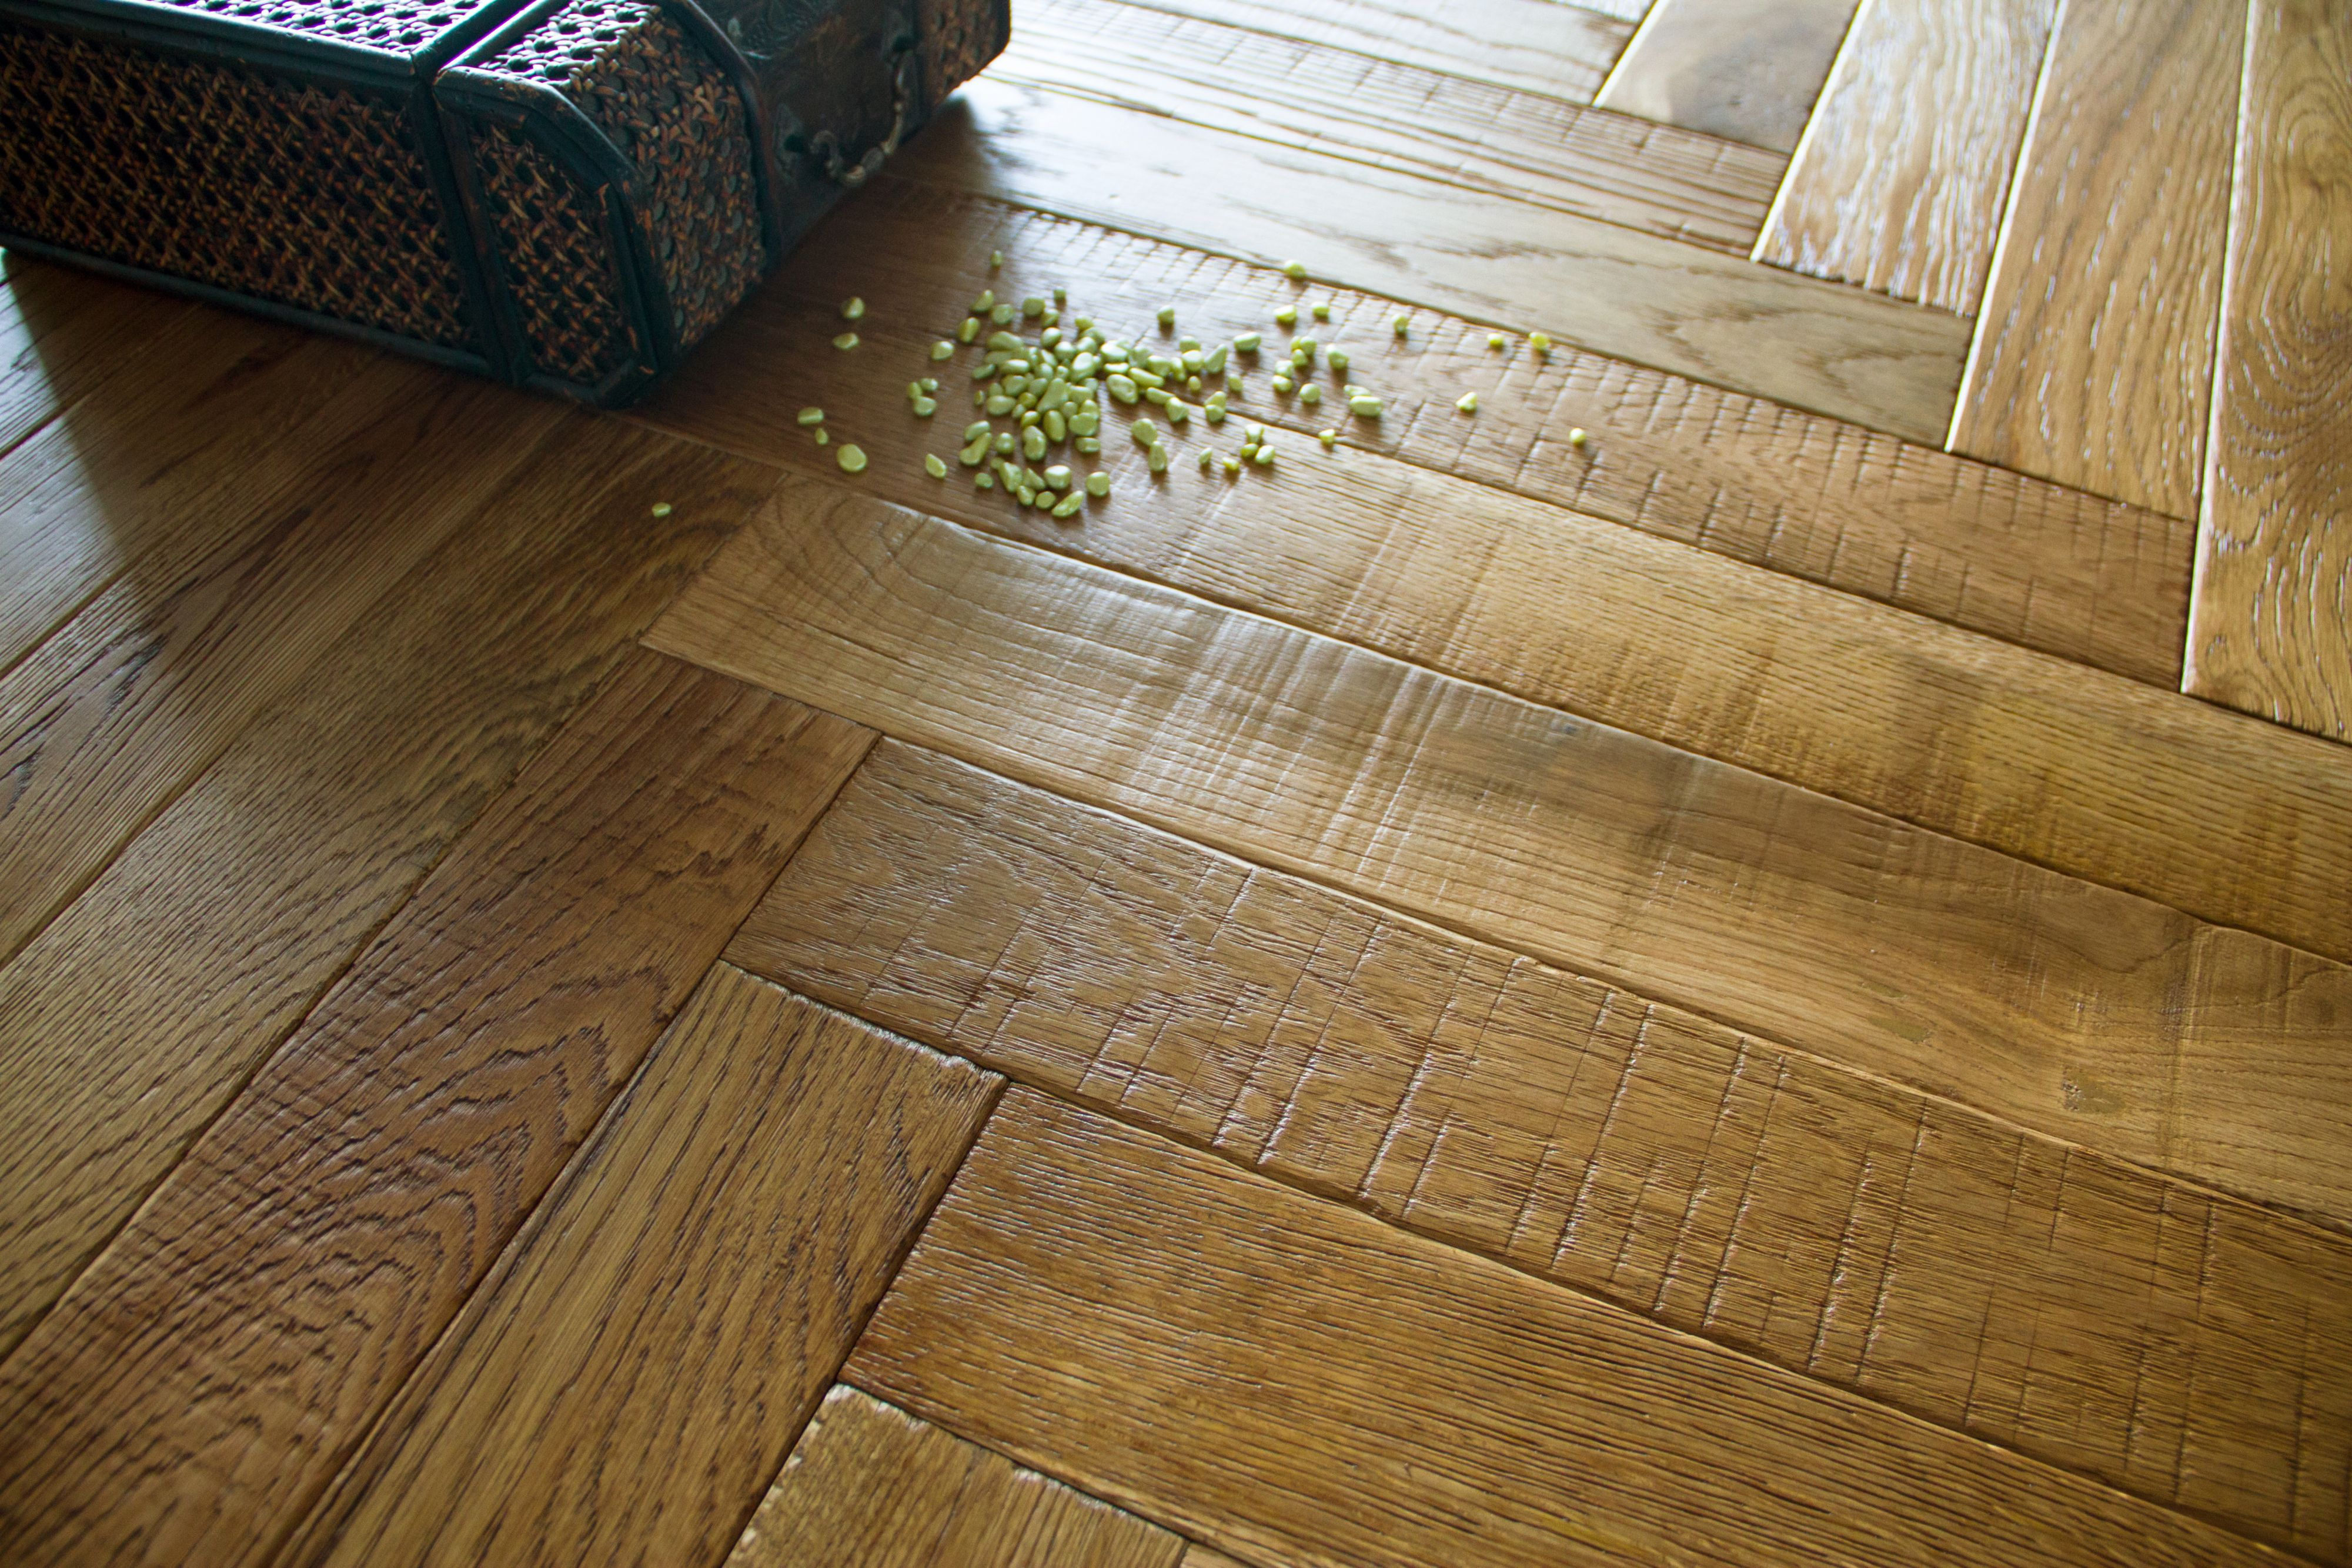 Bq Kitchen Flooring Vindemia Herringbone Natural Solid Oak Flooring 086 Ma2 Pack